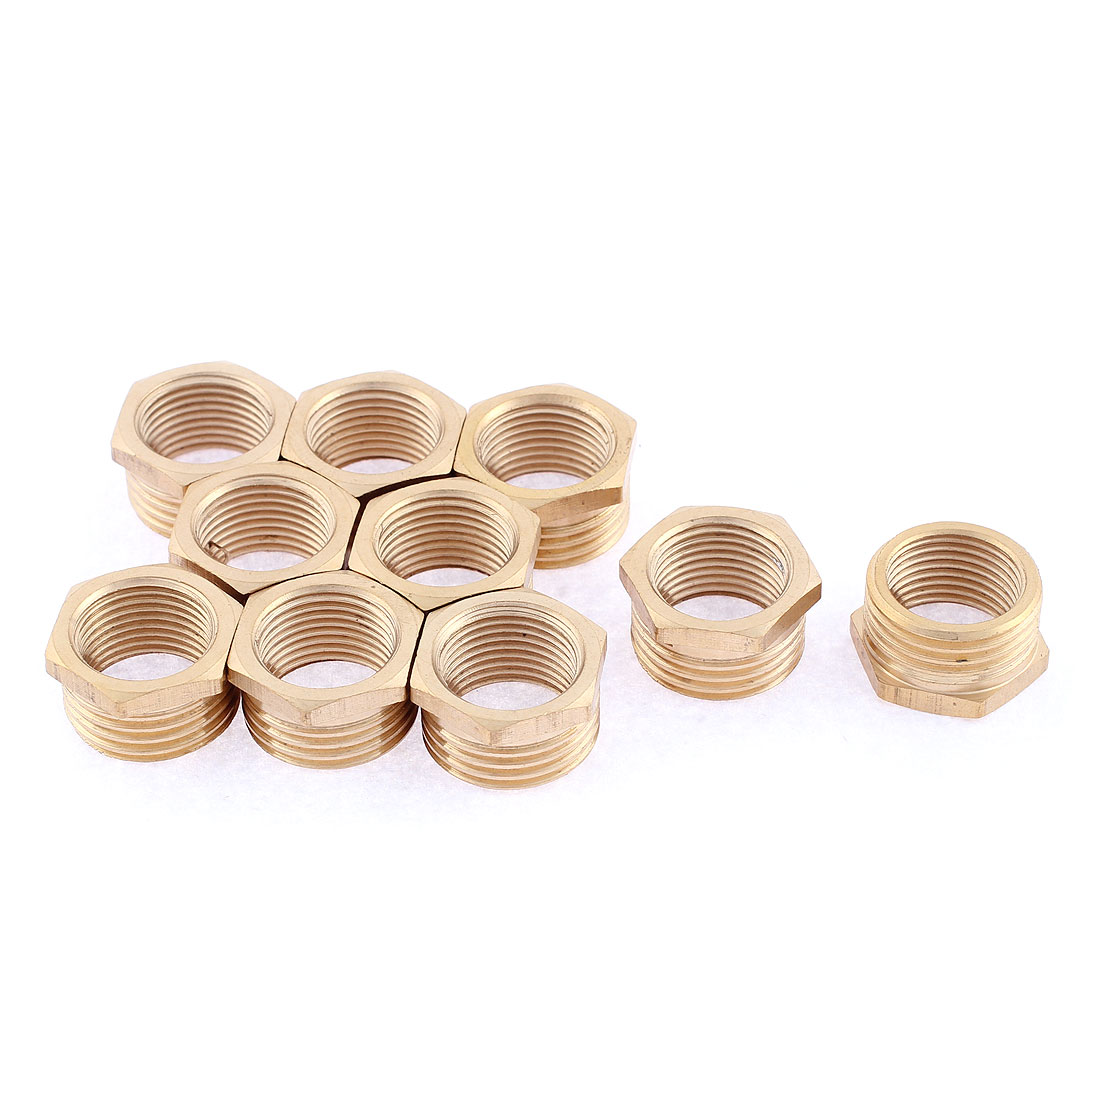 1/2BSP Male x 3/8BSP Female Thread Hex Reducer Bushing Pipe Fitting Connector 10pcs